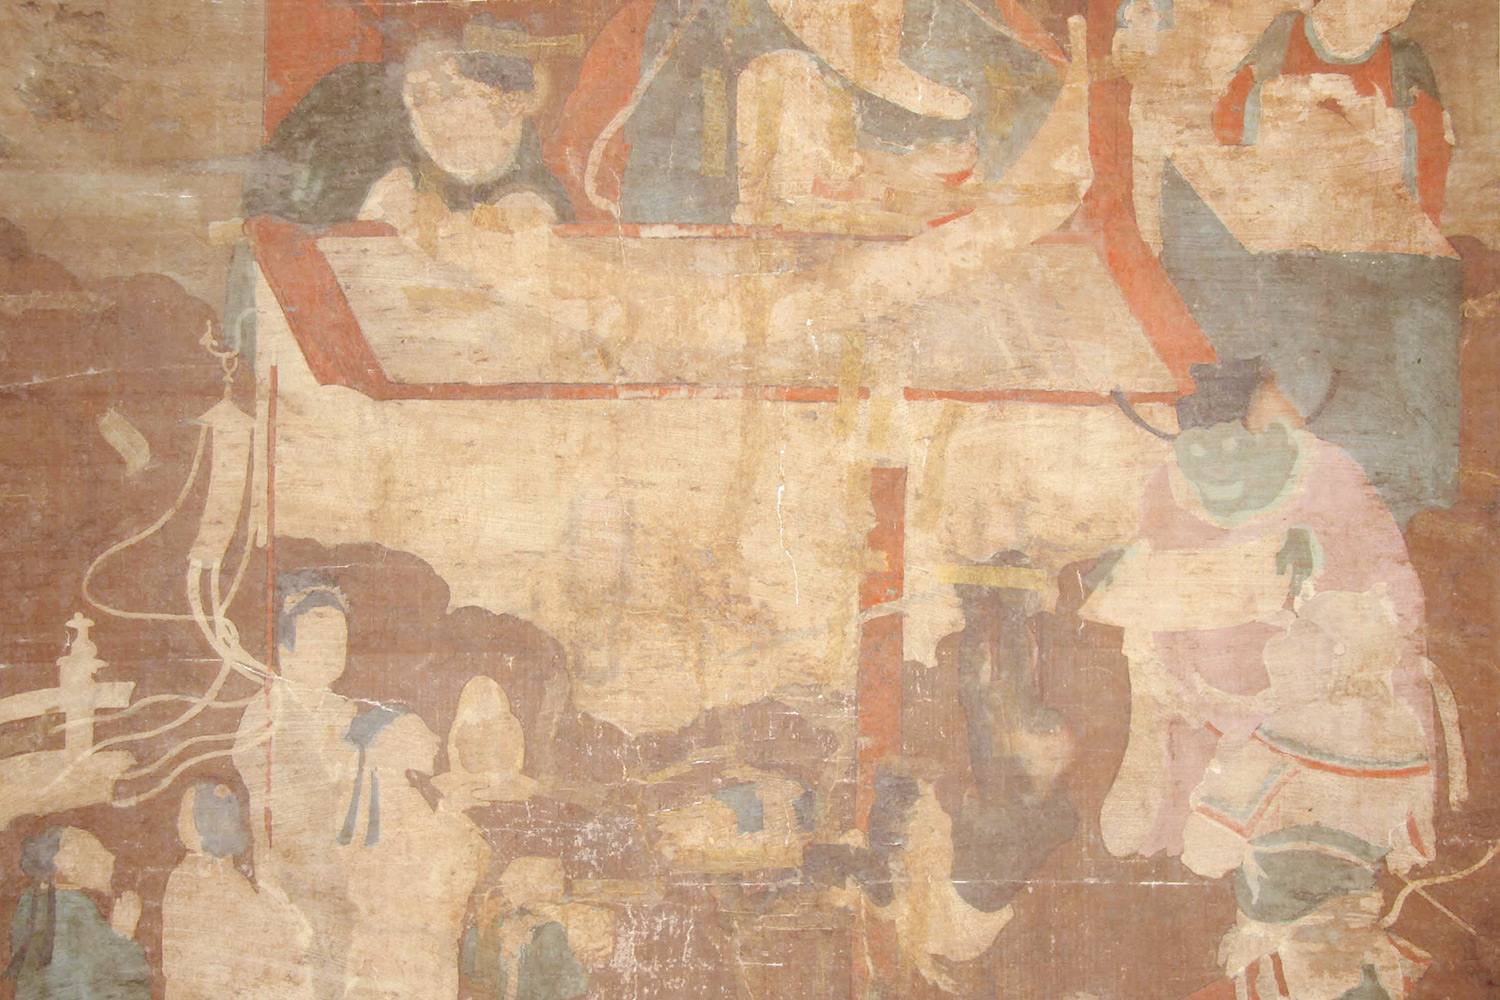 The application of paint on the reverse of the silk ground of the painting (known in Japanese as urazaishiki) was discovered after the layers of backing paper were removed.